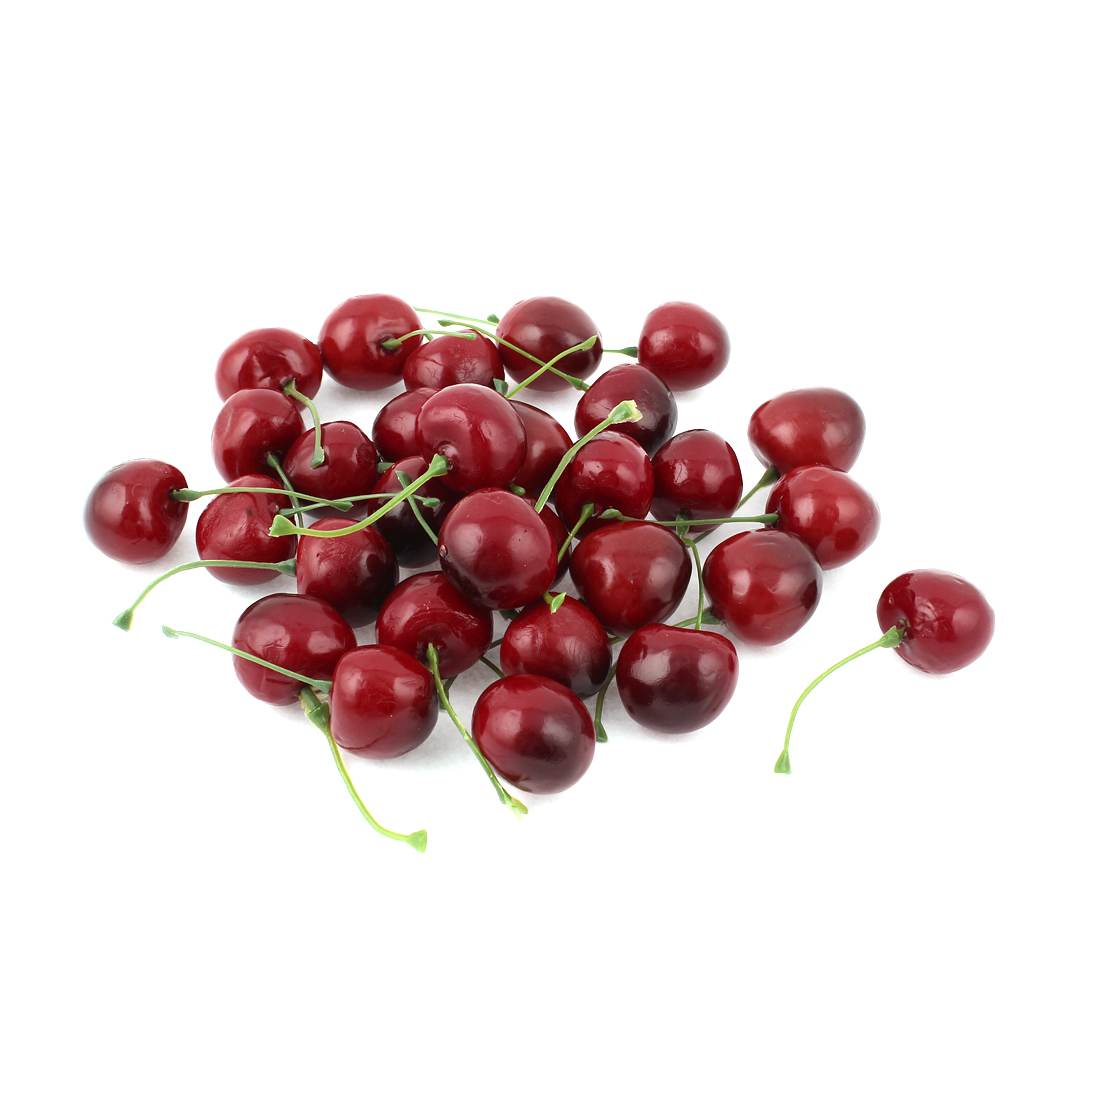 30 Pcs Artificial Fake Plastic Cherry Fruit Food Party Table Decoration